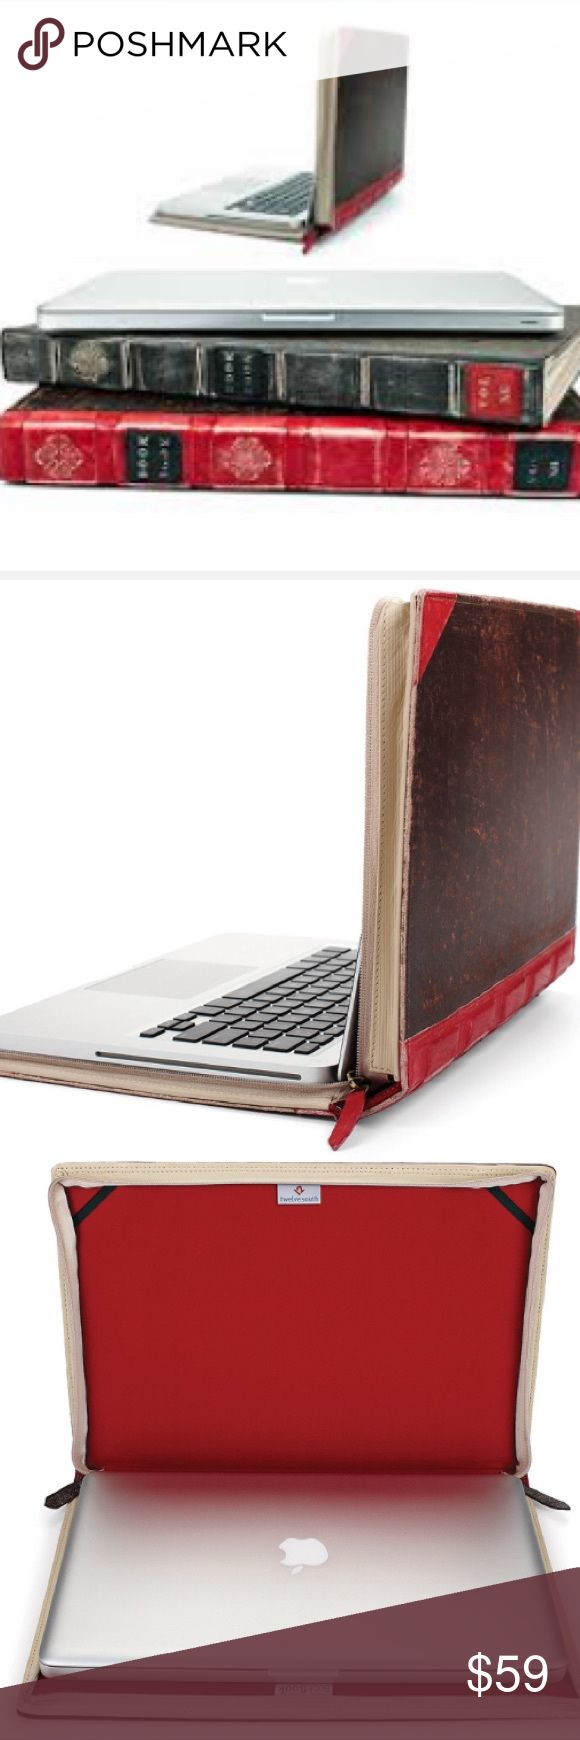 """Book Book 13 inch MacBook Pro case Twelvesouth Twelve south MacBook Pro 13 inch """"book book"""" case. Great condition. Leather cover designed to make your laptop look like a leather bound book. Twelvesouth Bags Laptop Bags"""